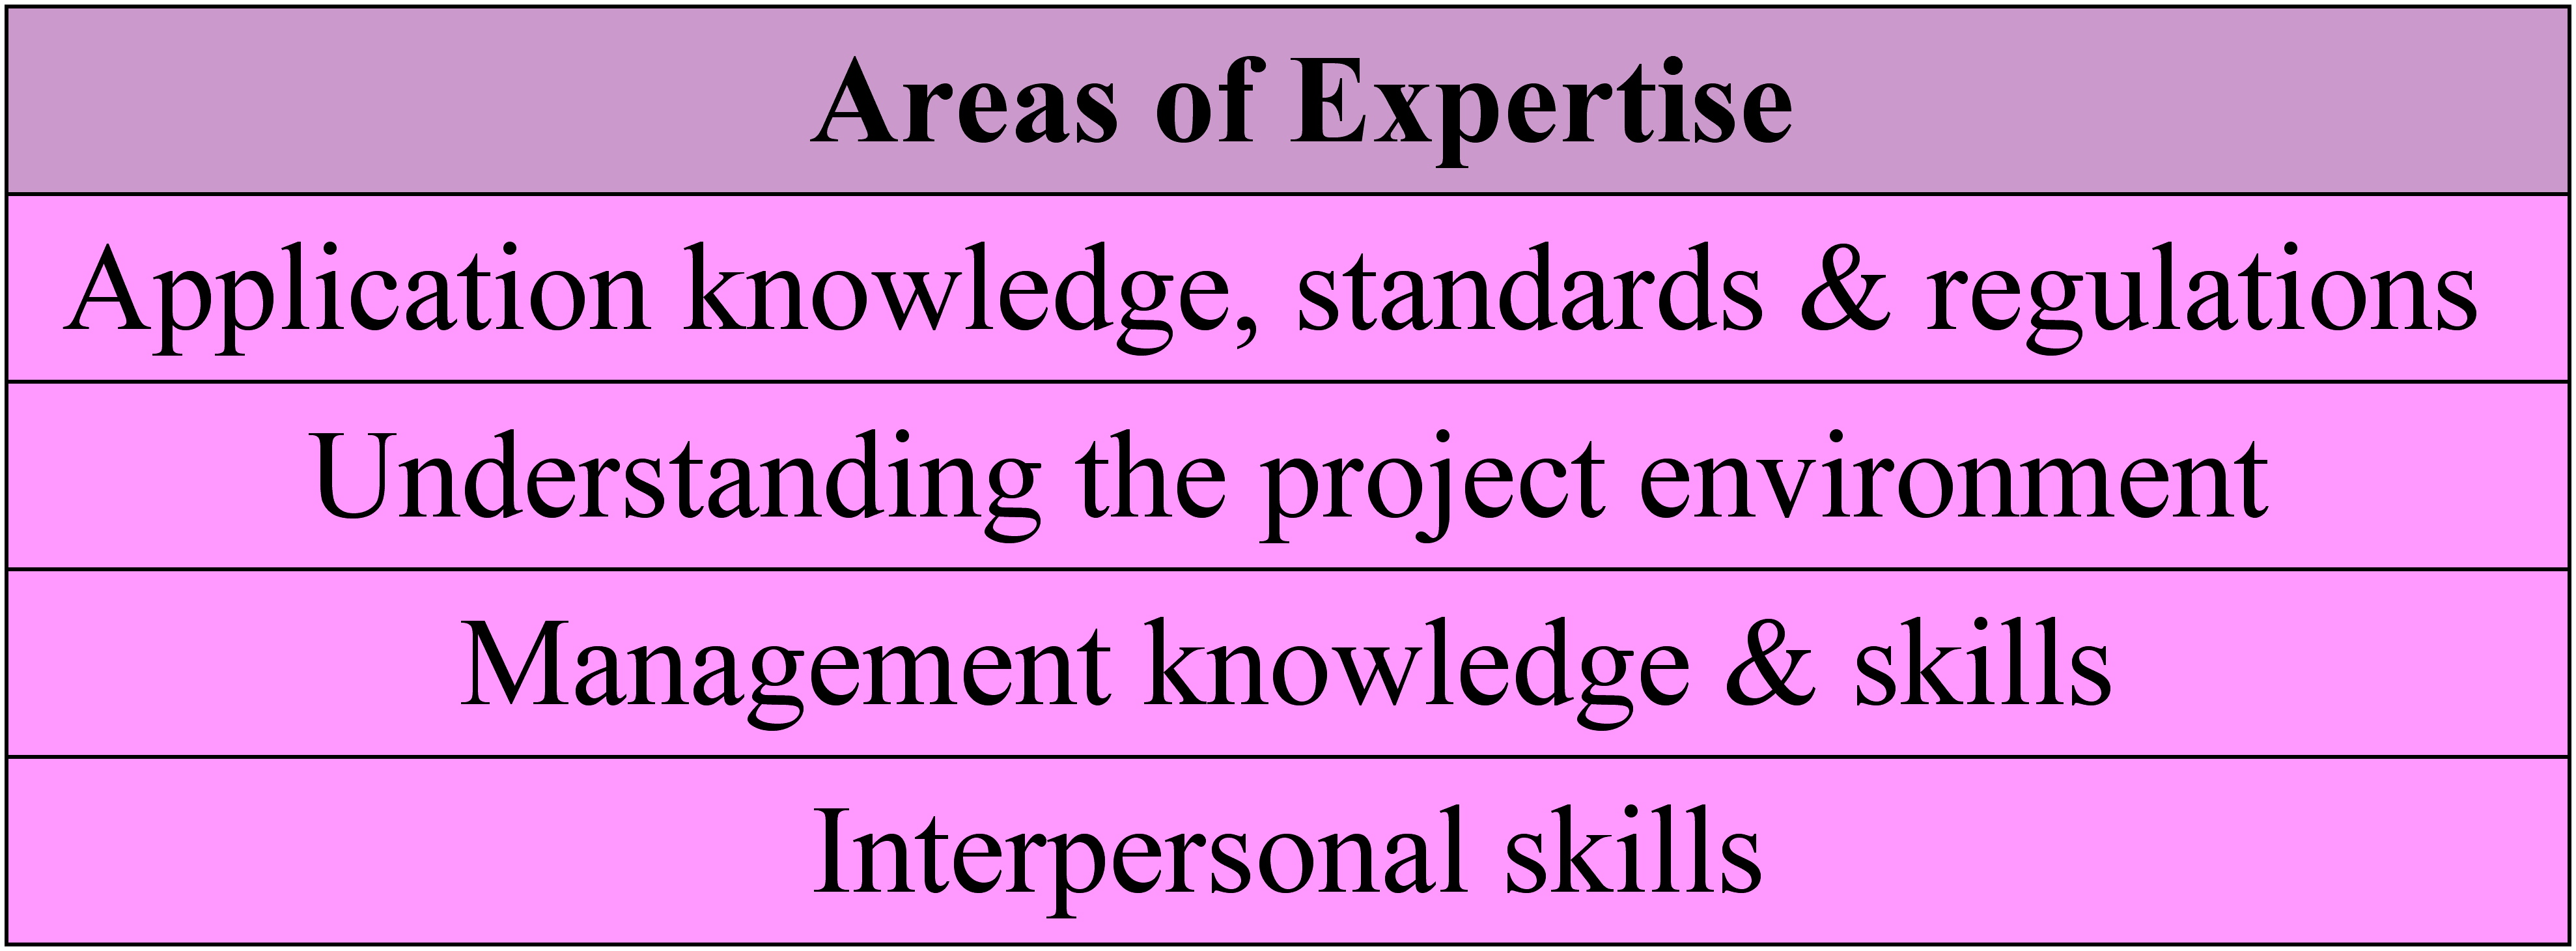 Areas of expertise: application knowledge, standards & regulations; understanding the project environment; management knowledge & skills; & interpersonal skills